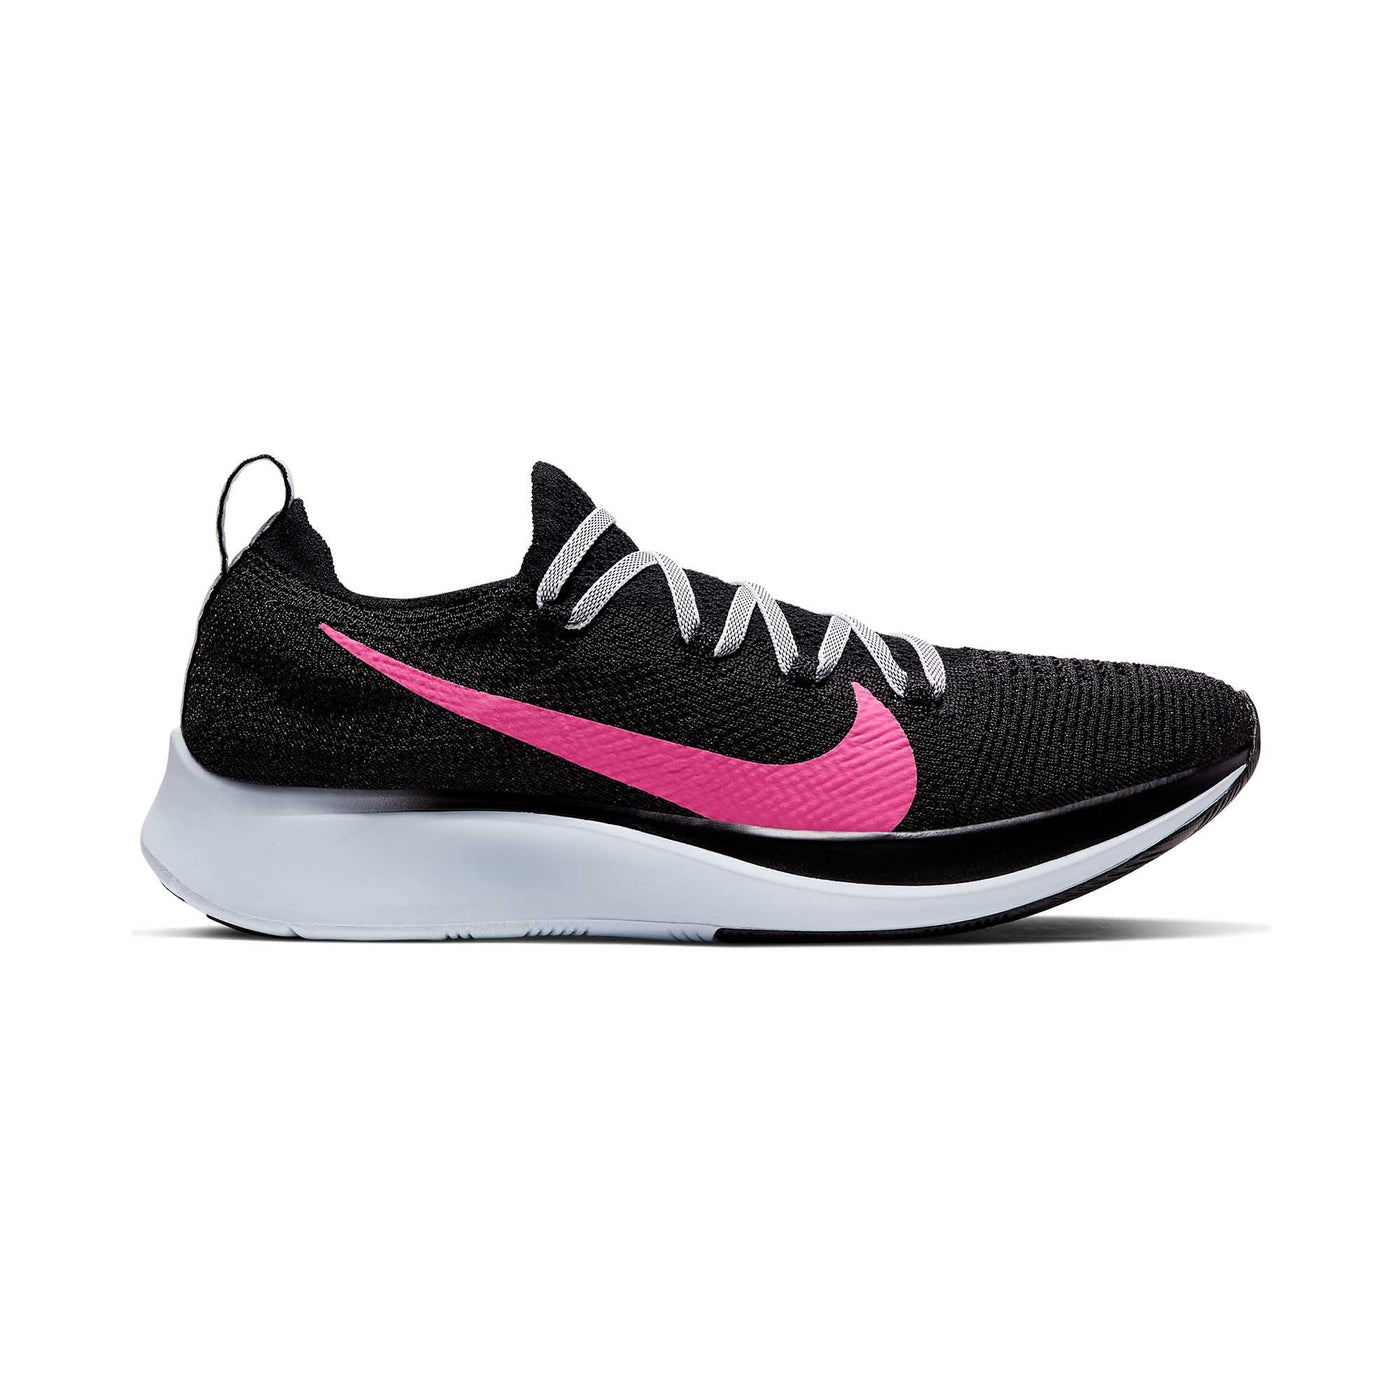 fd3d5410d7 Women Zoom Fly Flyknit Running Shoes